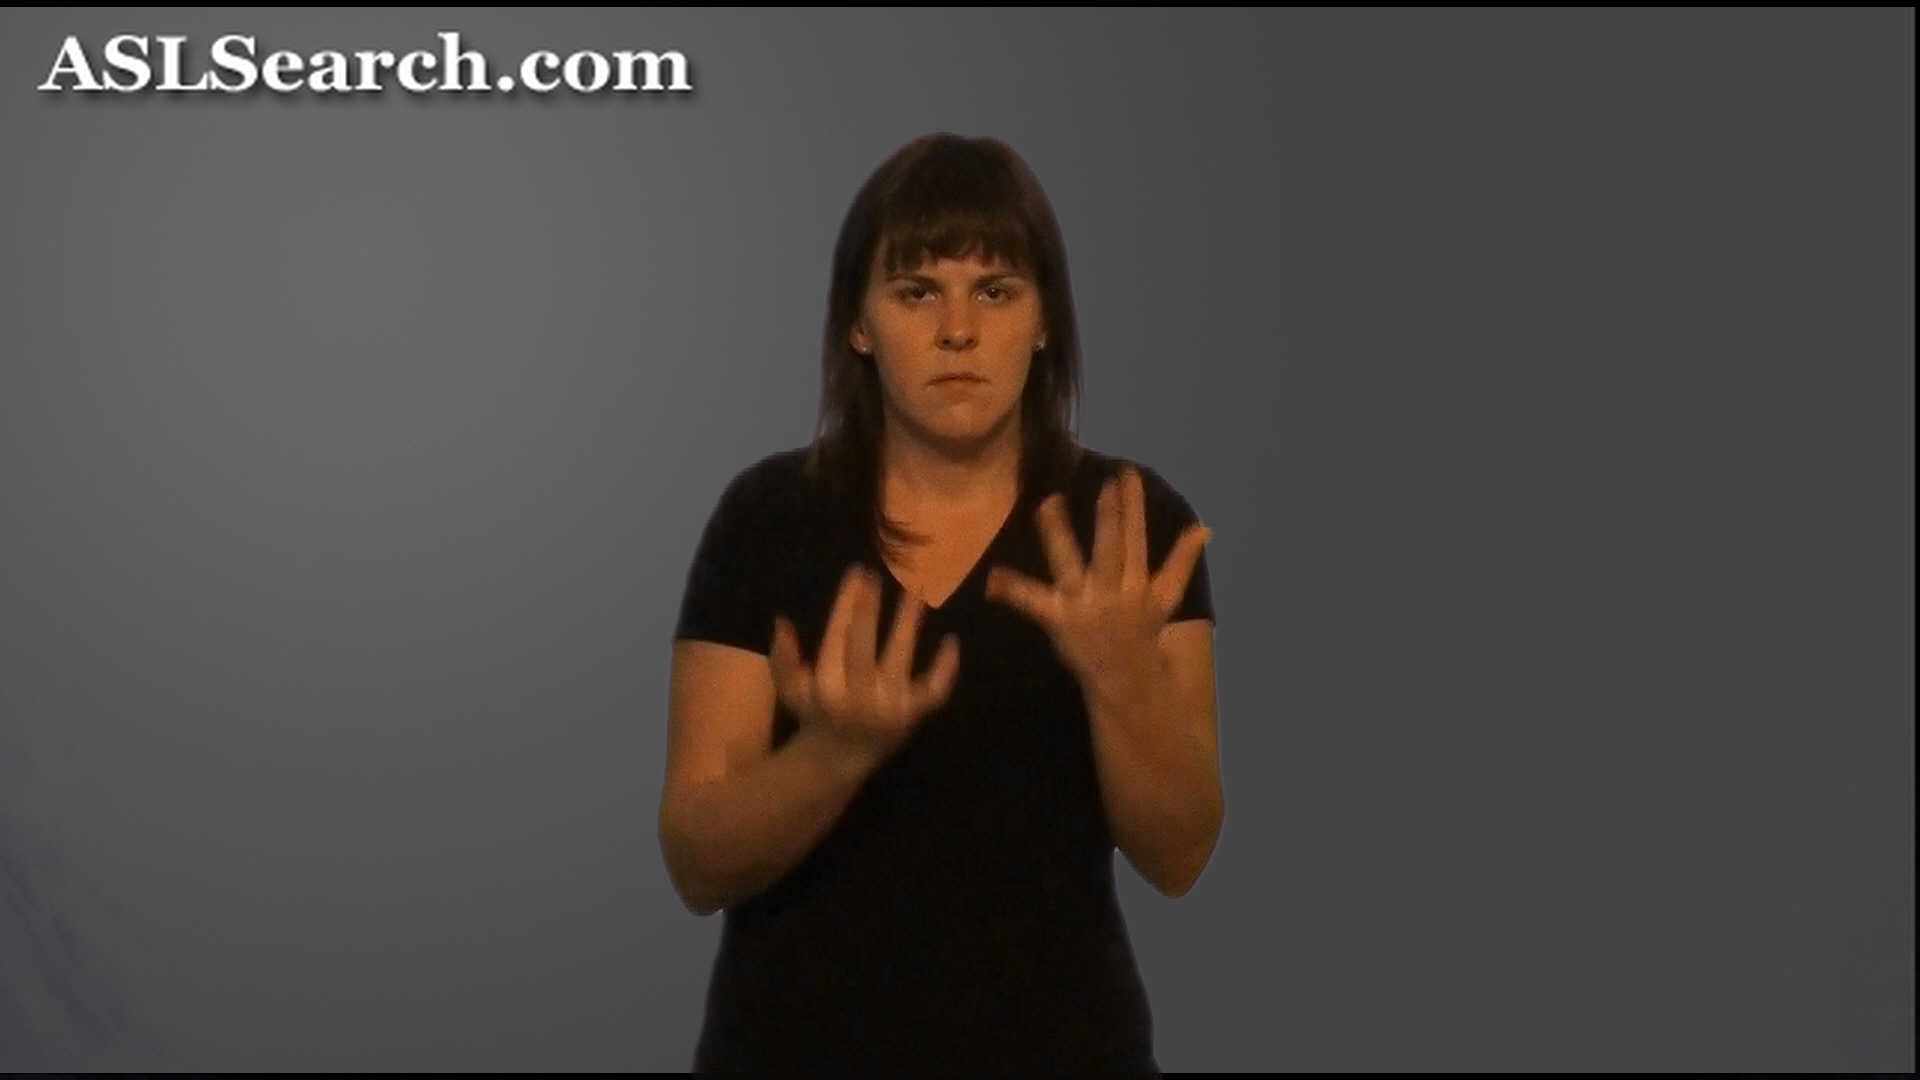 ASL for fire truck